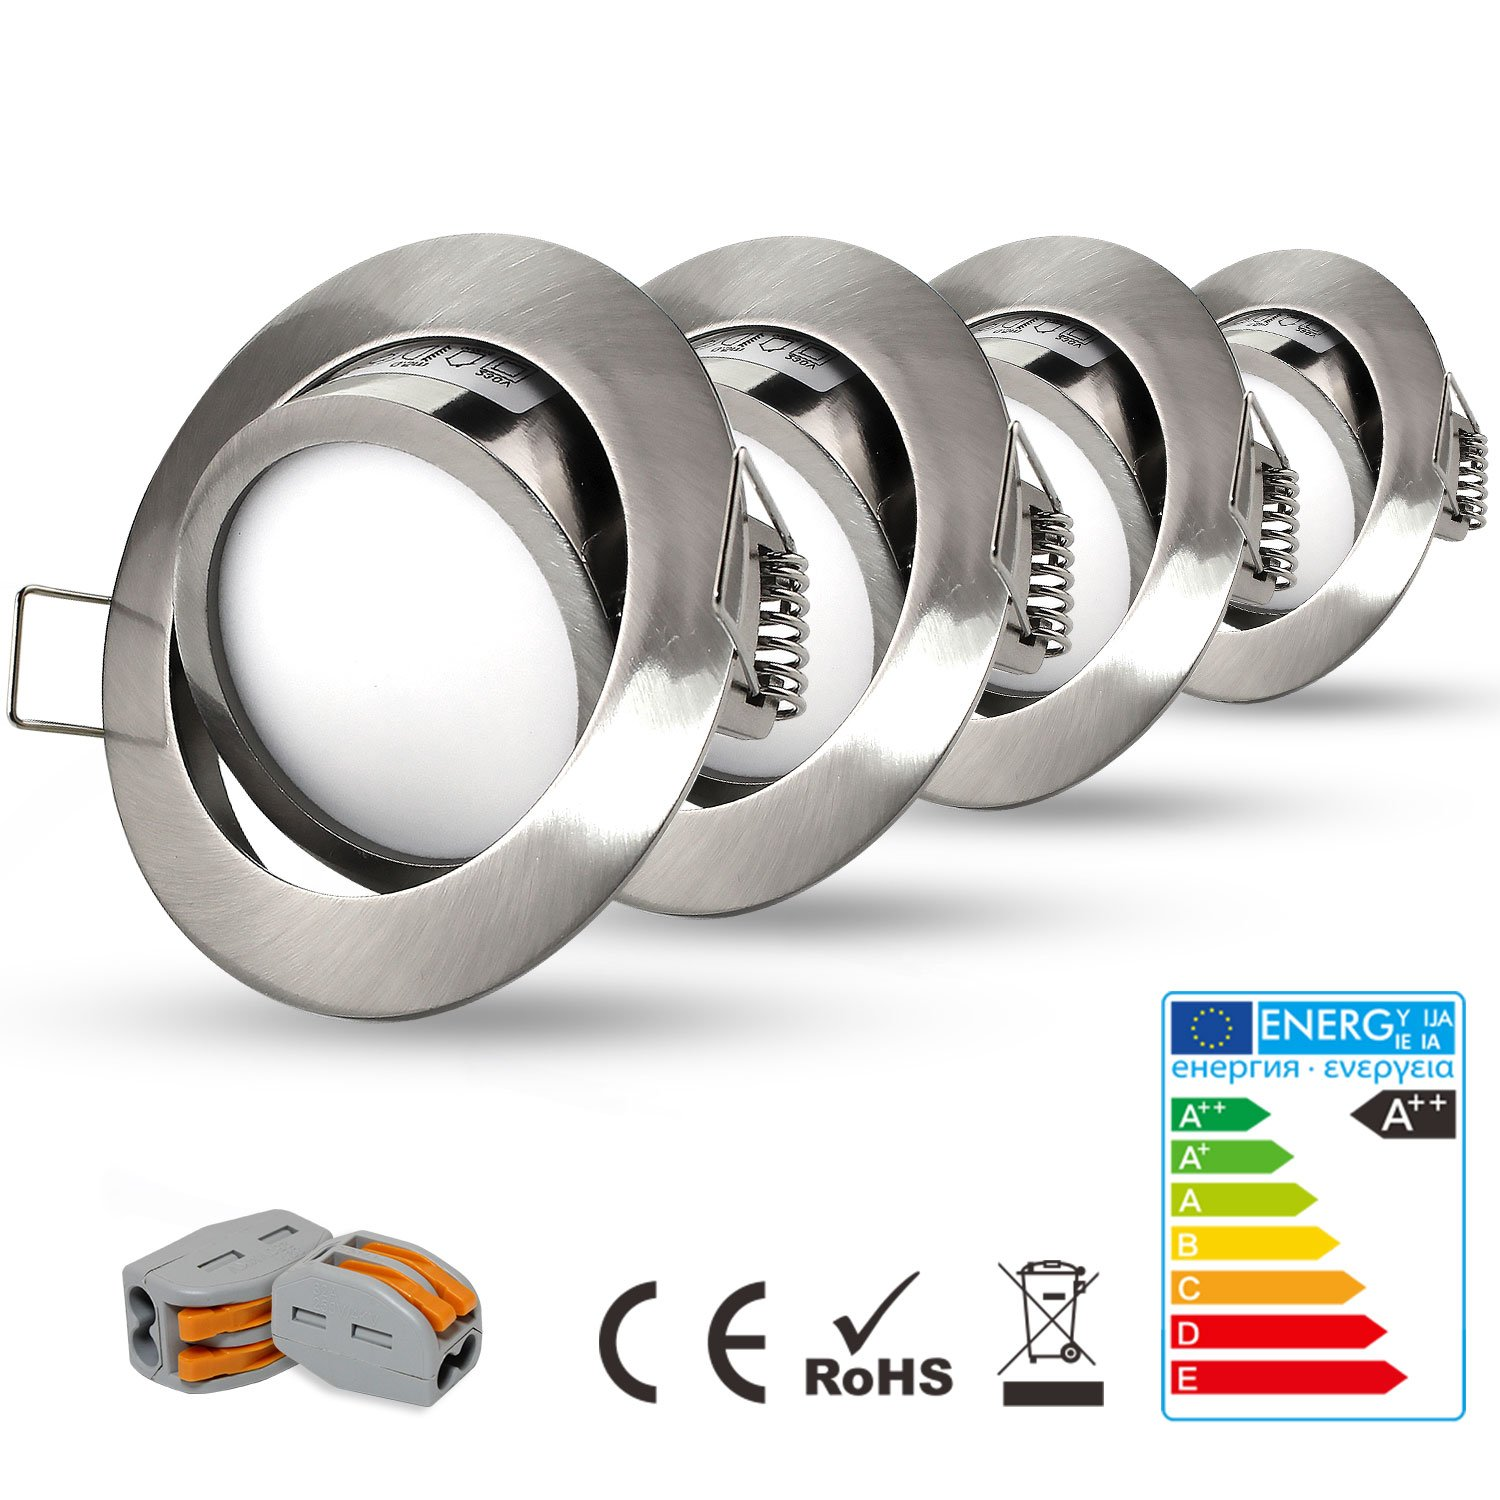 HiBay Ultra Flach LED Einbaustrahler - Tolles Design - Naturalweiss ...